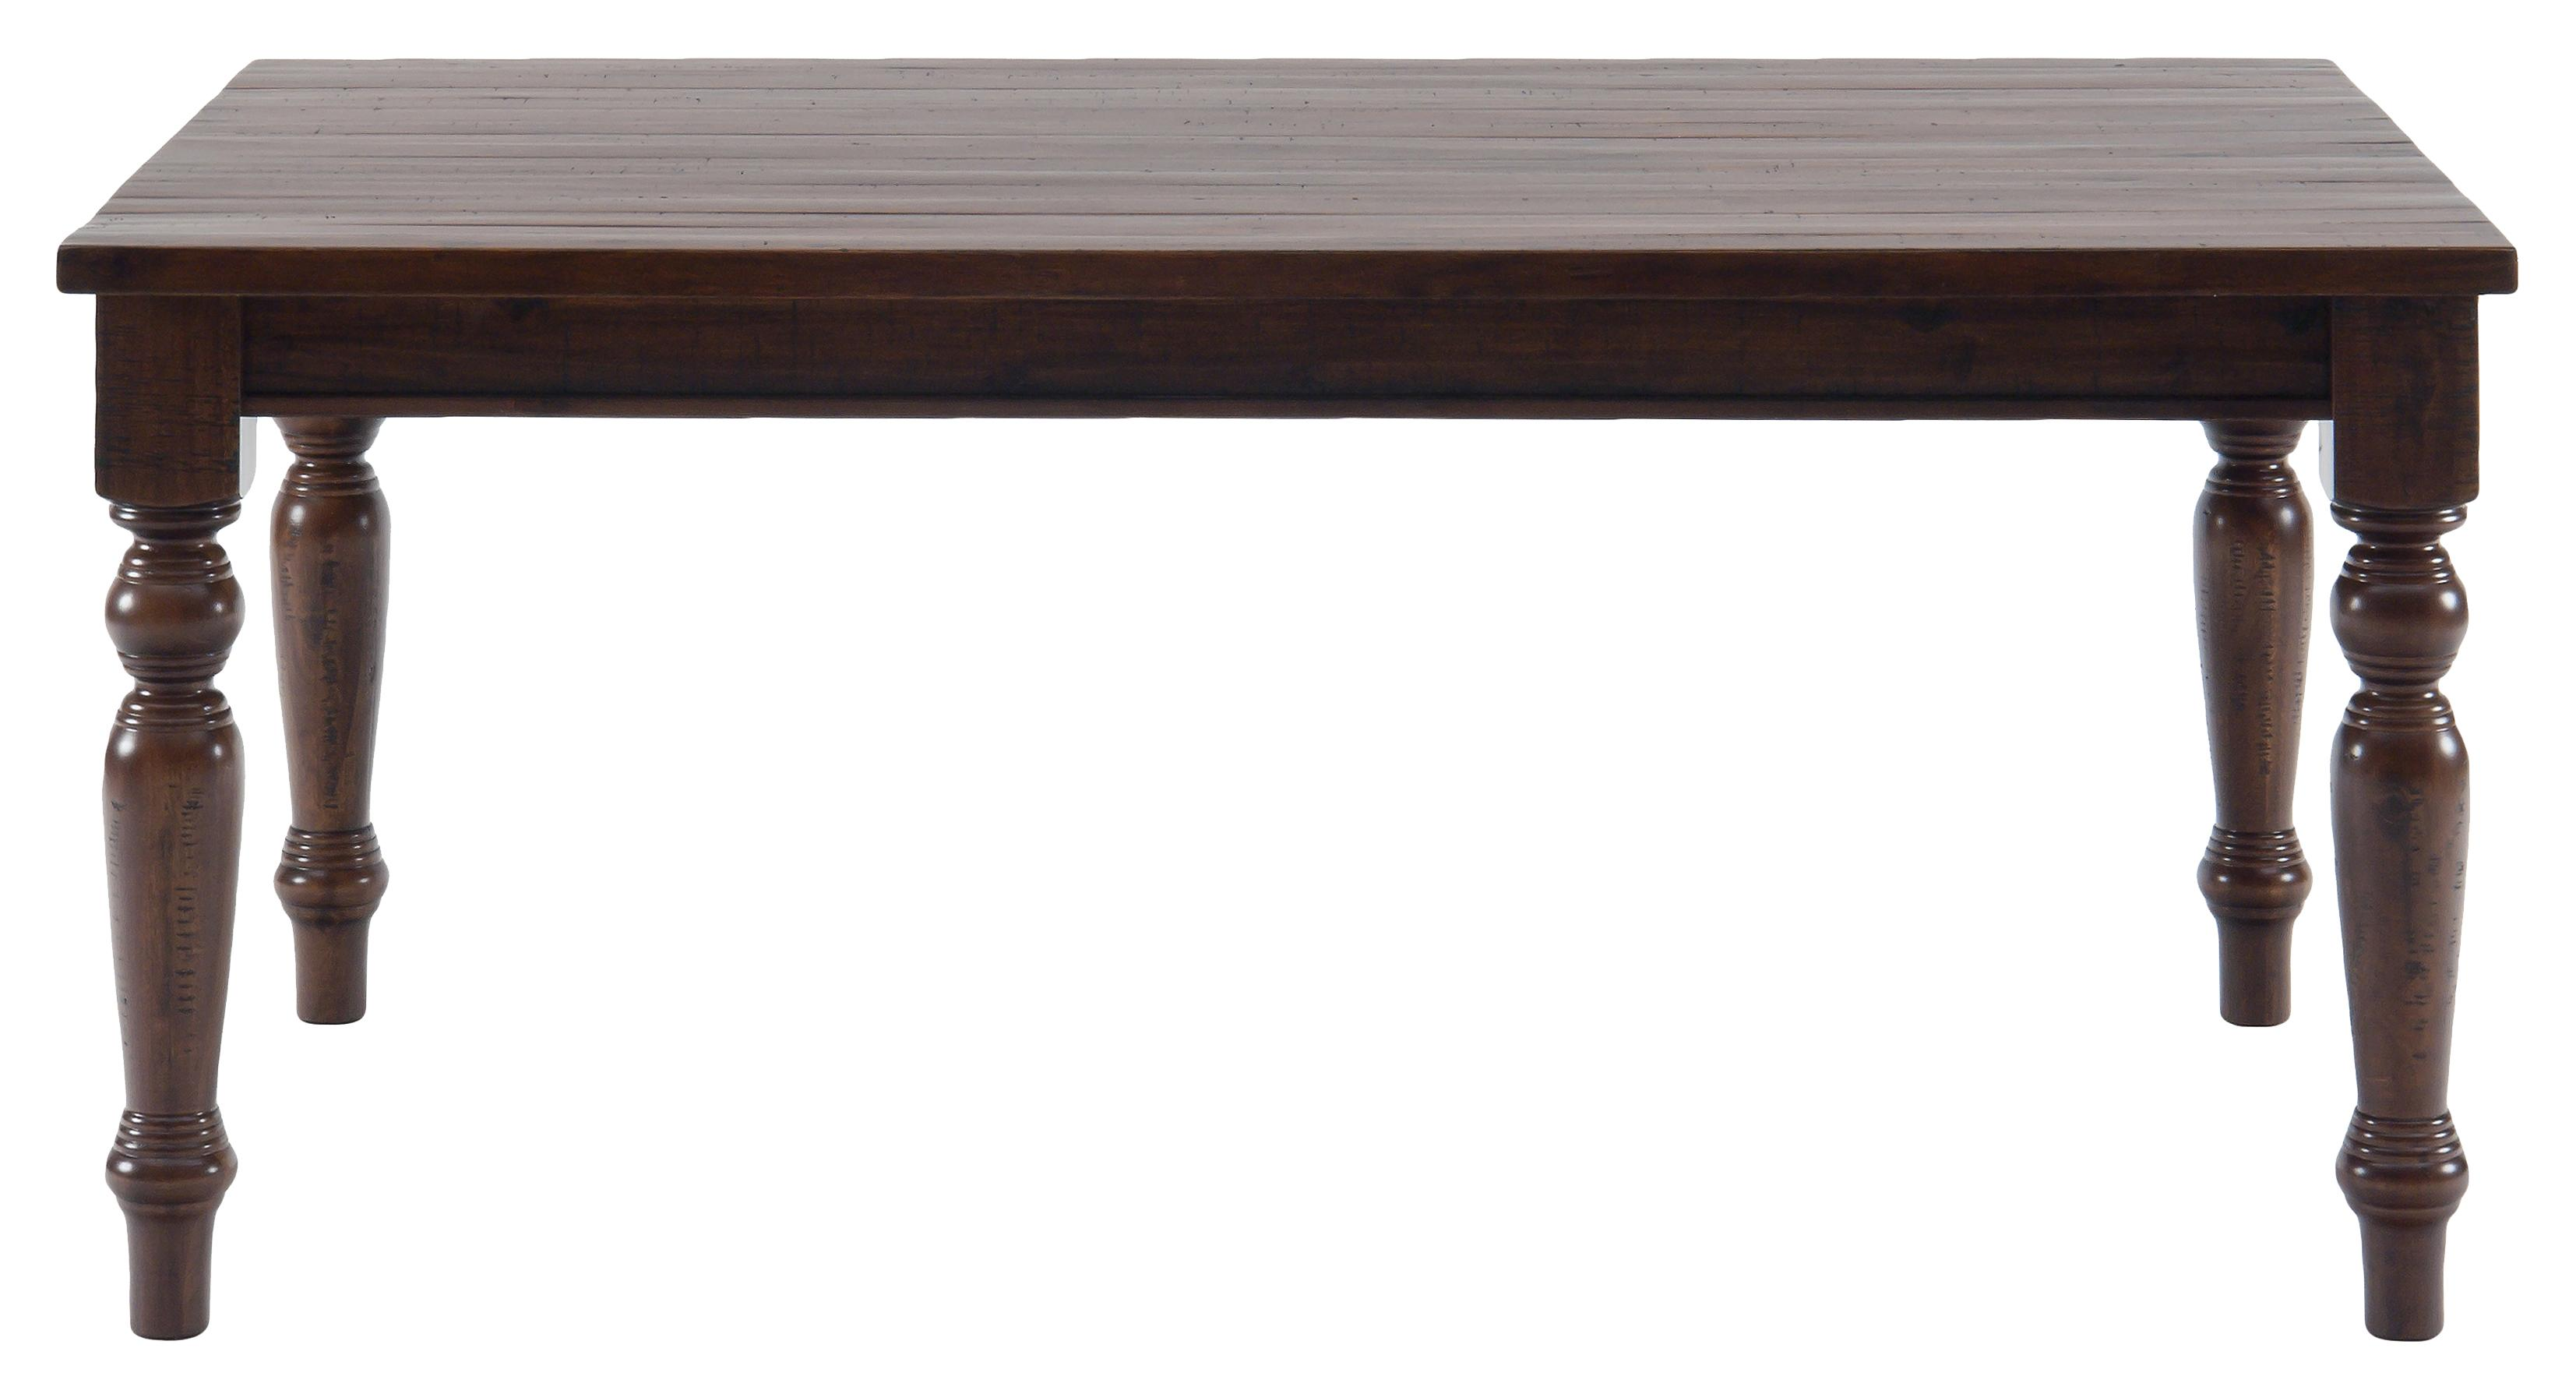 Urban Lodge Rustic Hewn Rectangular Table by Jofran at Pilgrim Furniture City